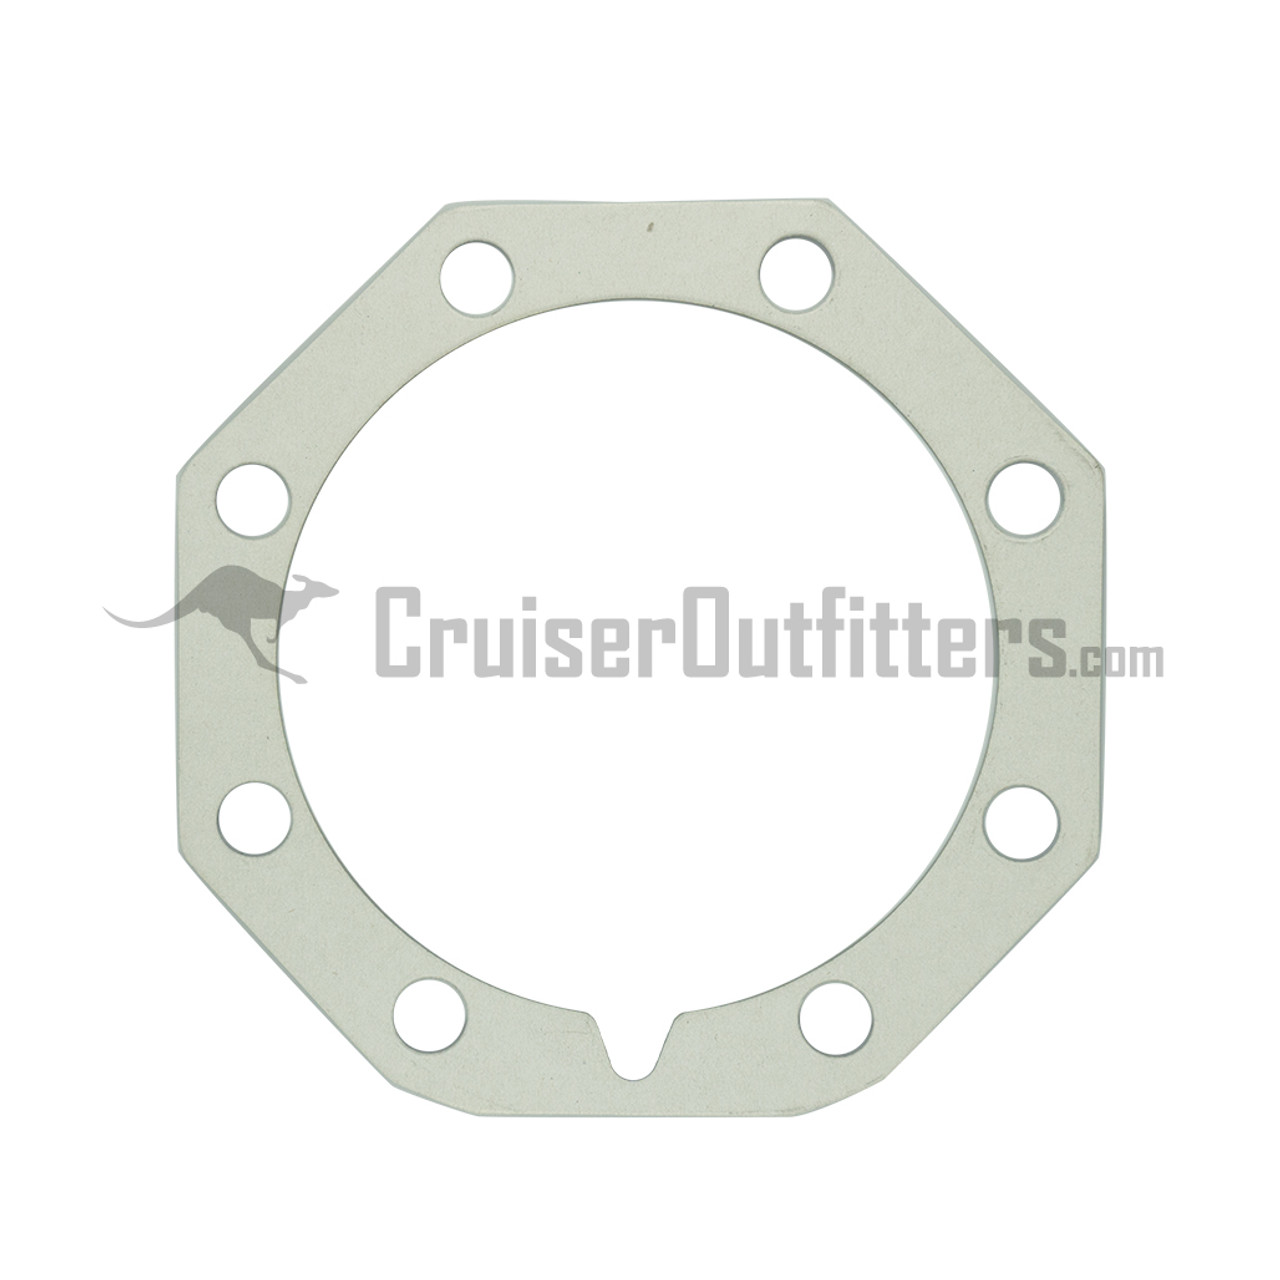 Spindle Gasket - Japanese - Fits 1/1990 - 1997 FJ80/FZJ80/LX450 (2 Required per Axle) (HG560020)